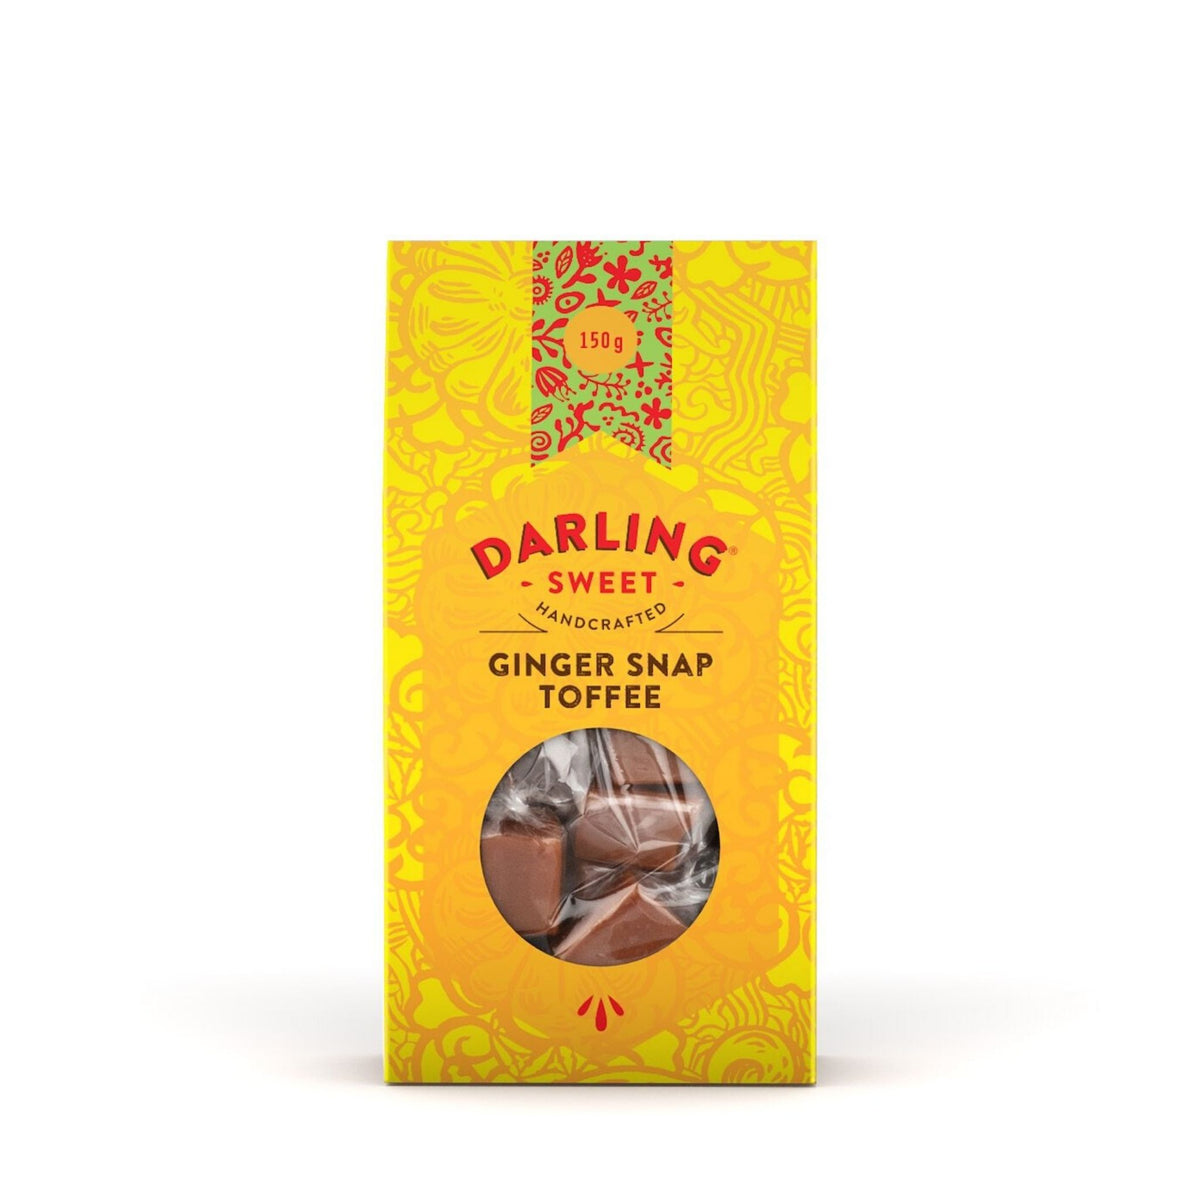 Darling Sweet Ginger Snap Toffee